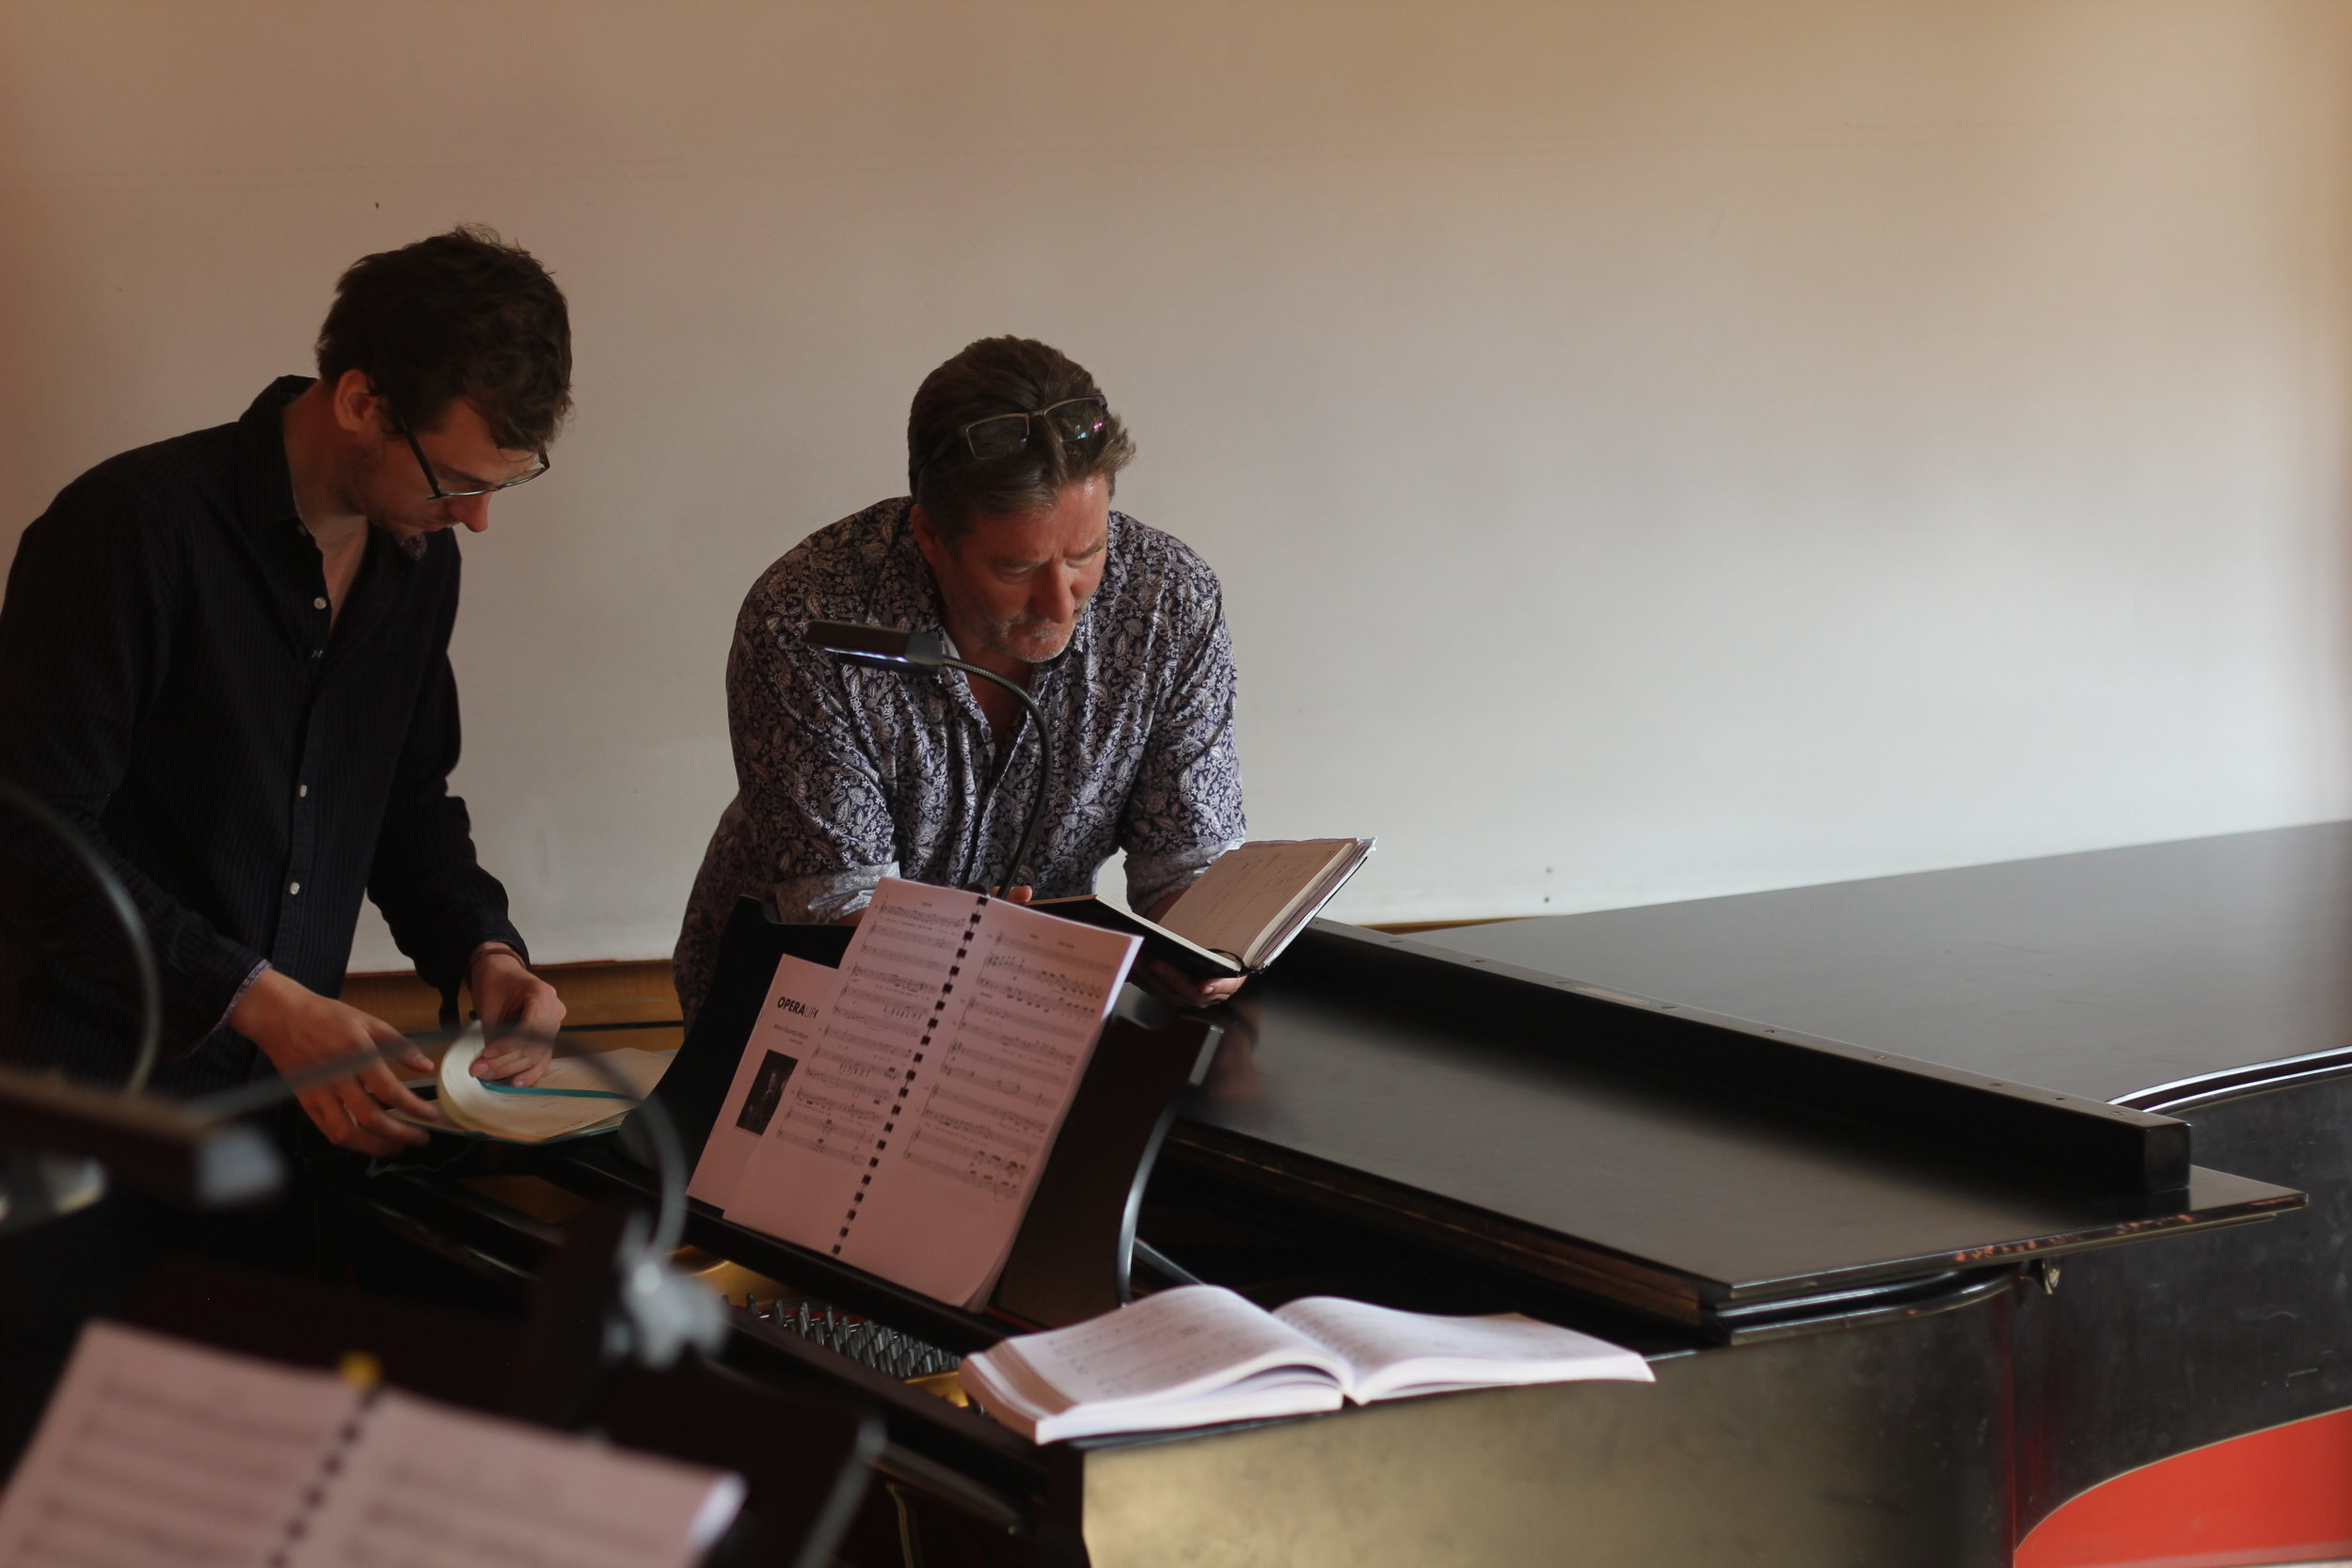 Maria Stuarda 2018: Paul McKenzie (Orchestration and Musical Director), Stuart Pendred (Lord Talbot)